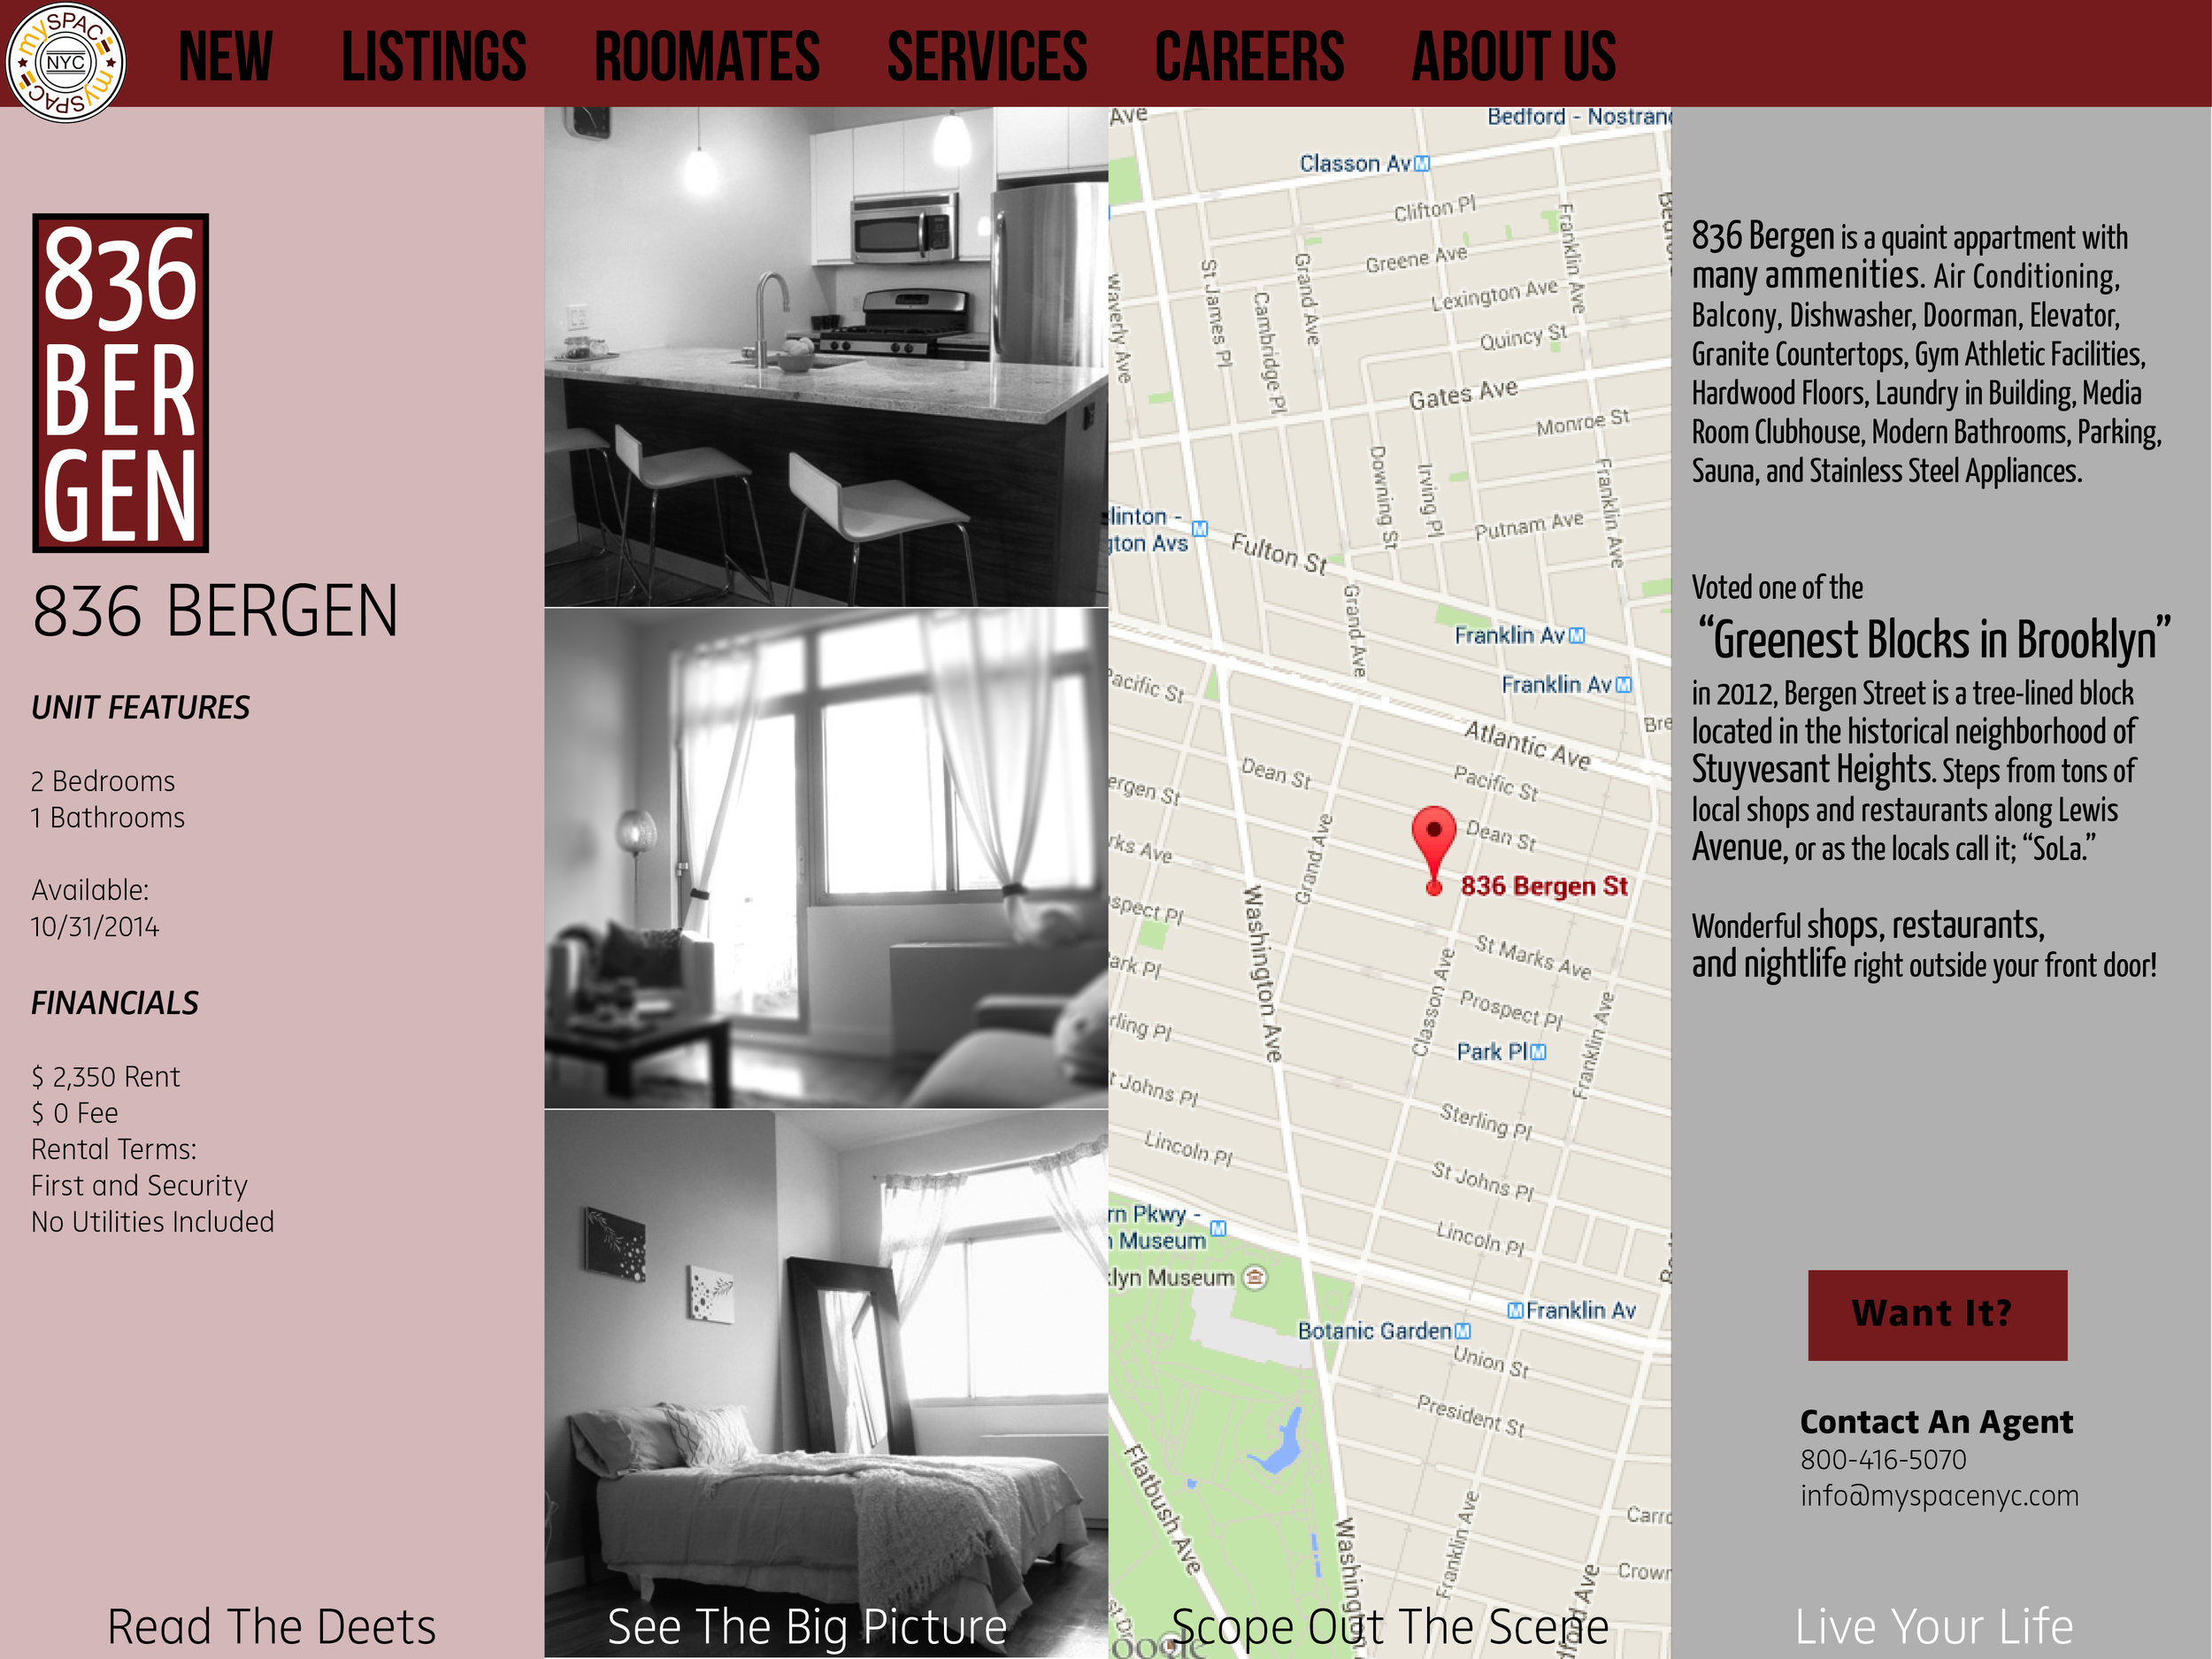 The Microsite for 836 Bergen, each property on the realtors website would have a page where an interested buyer would find information, price, pictures and location.